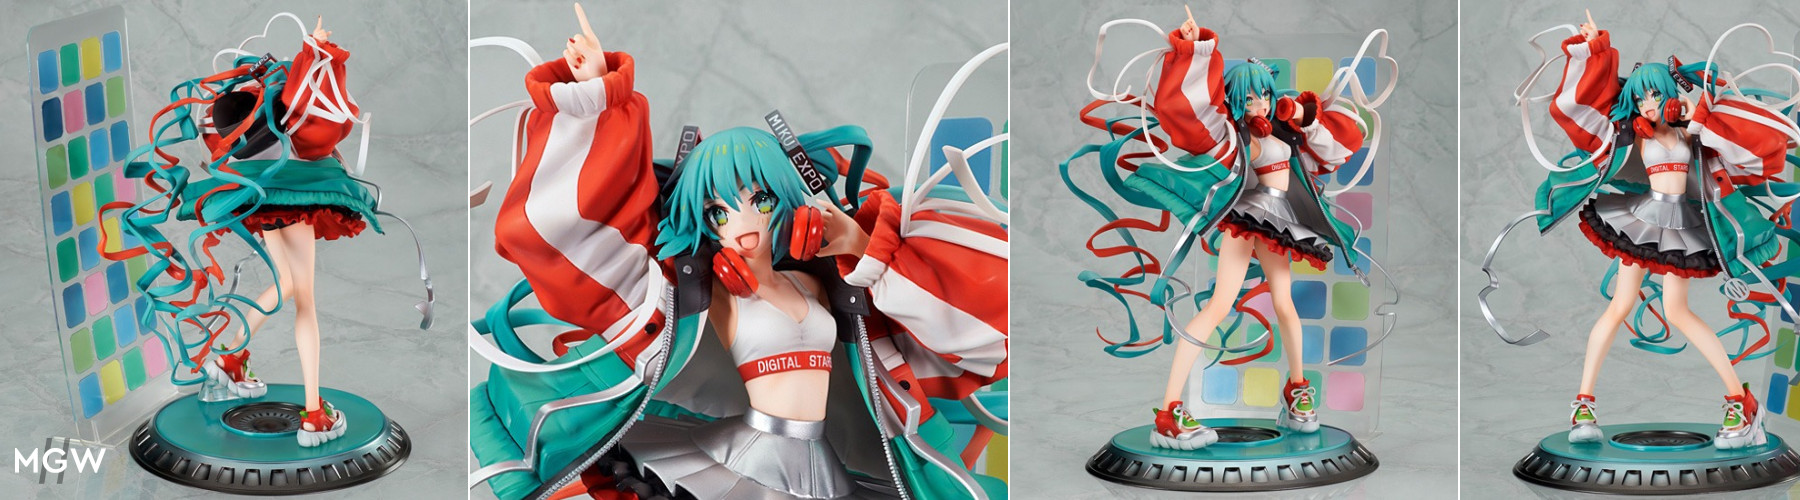 Hatsune Miku MIKU EXPO Digital Stars 2020 ver. DX by HOBBY STOCK with illustration by Wada Arco